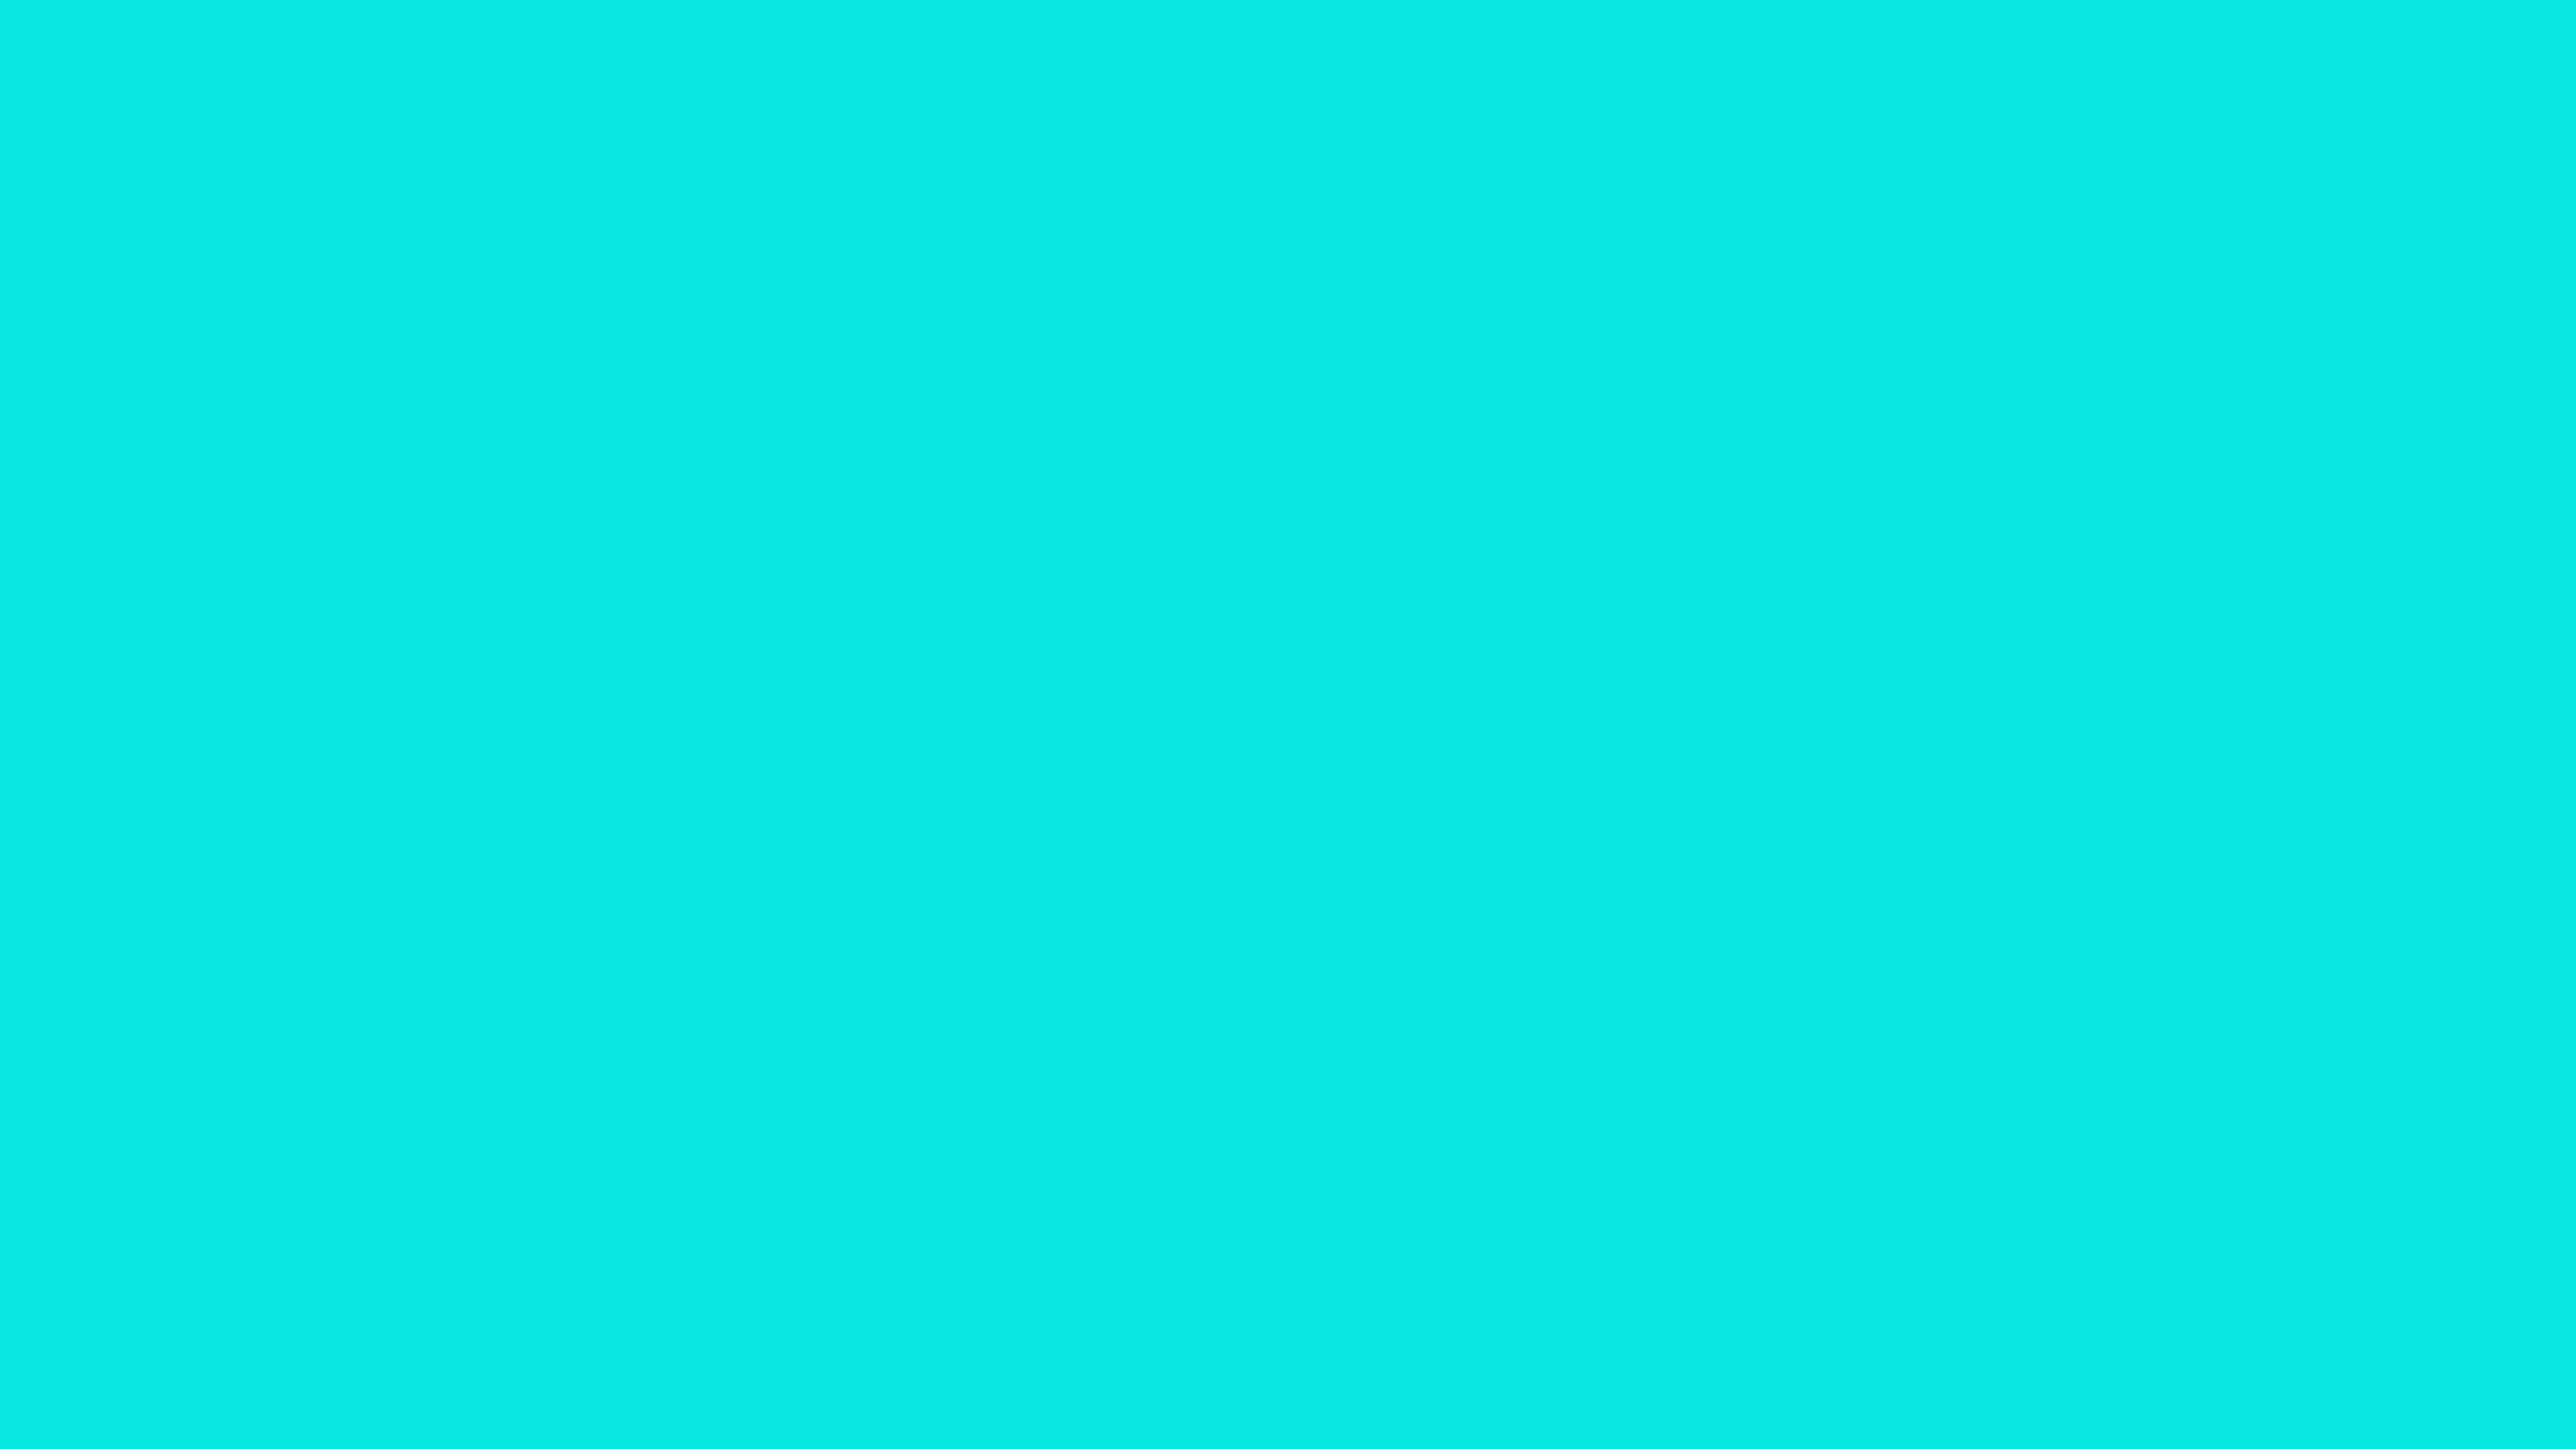 3840x2160 Bright Turquoise Solid Color Background